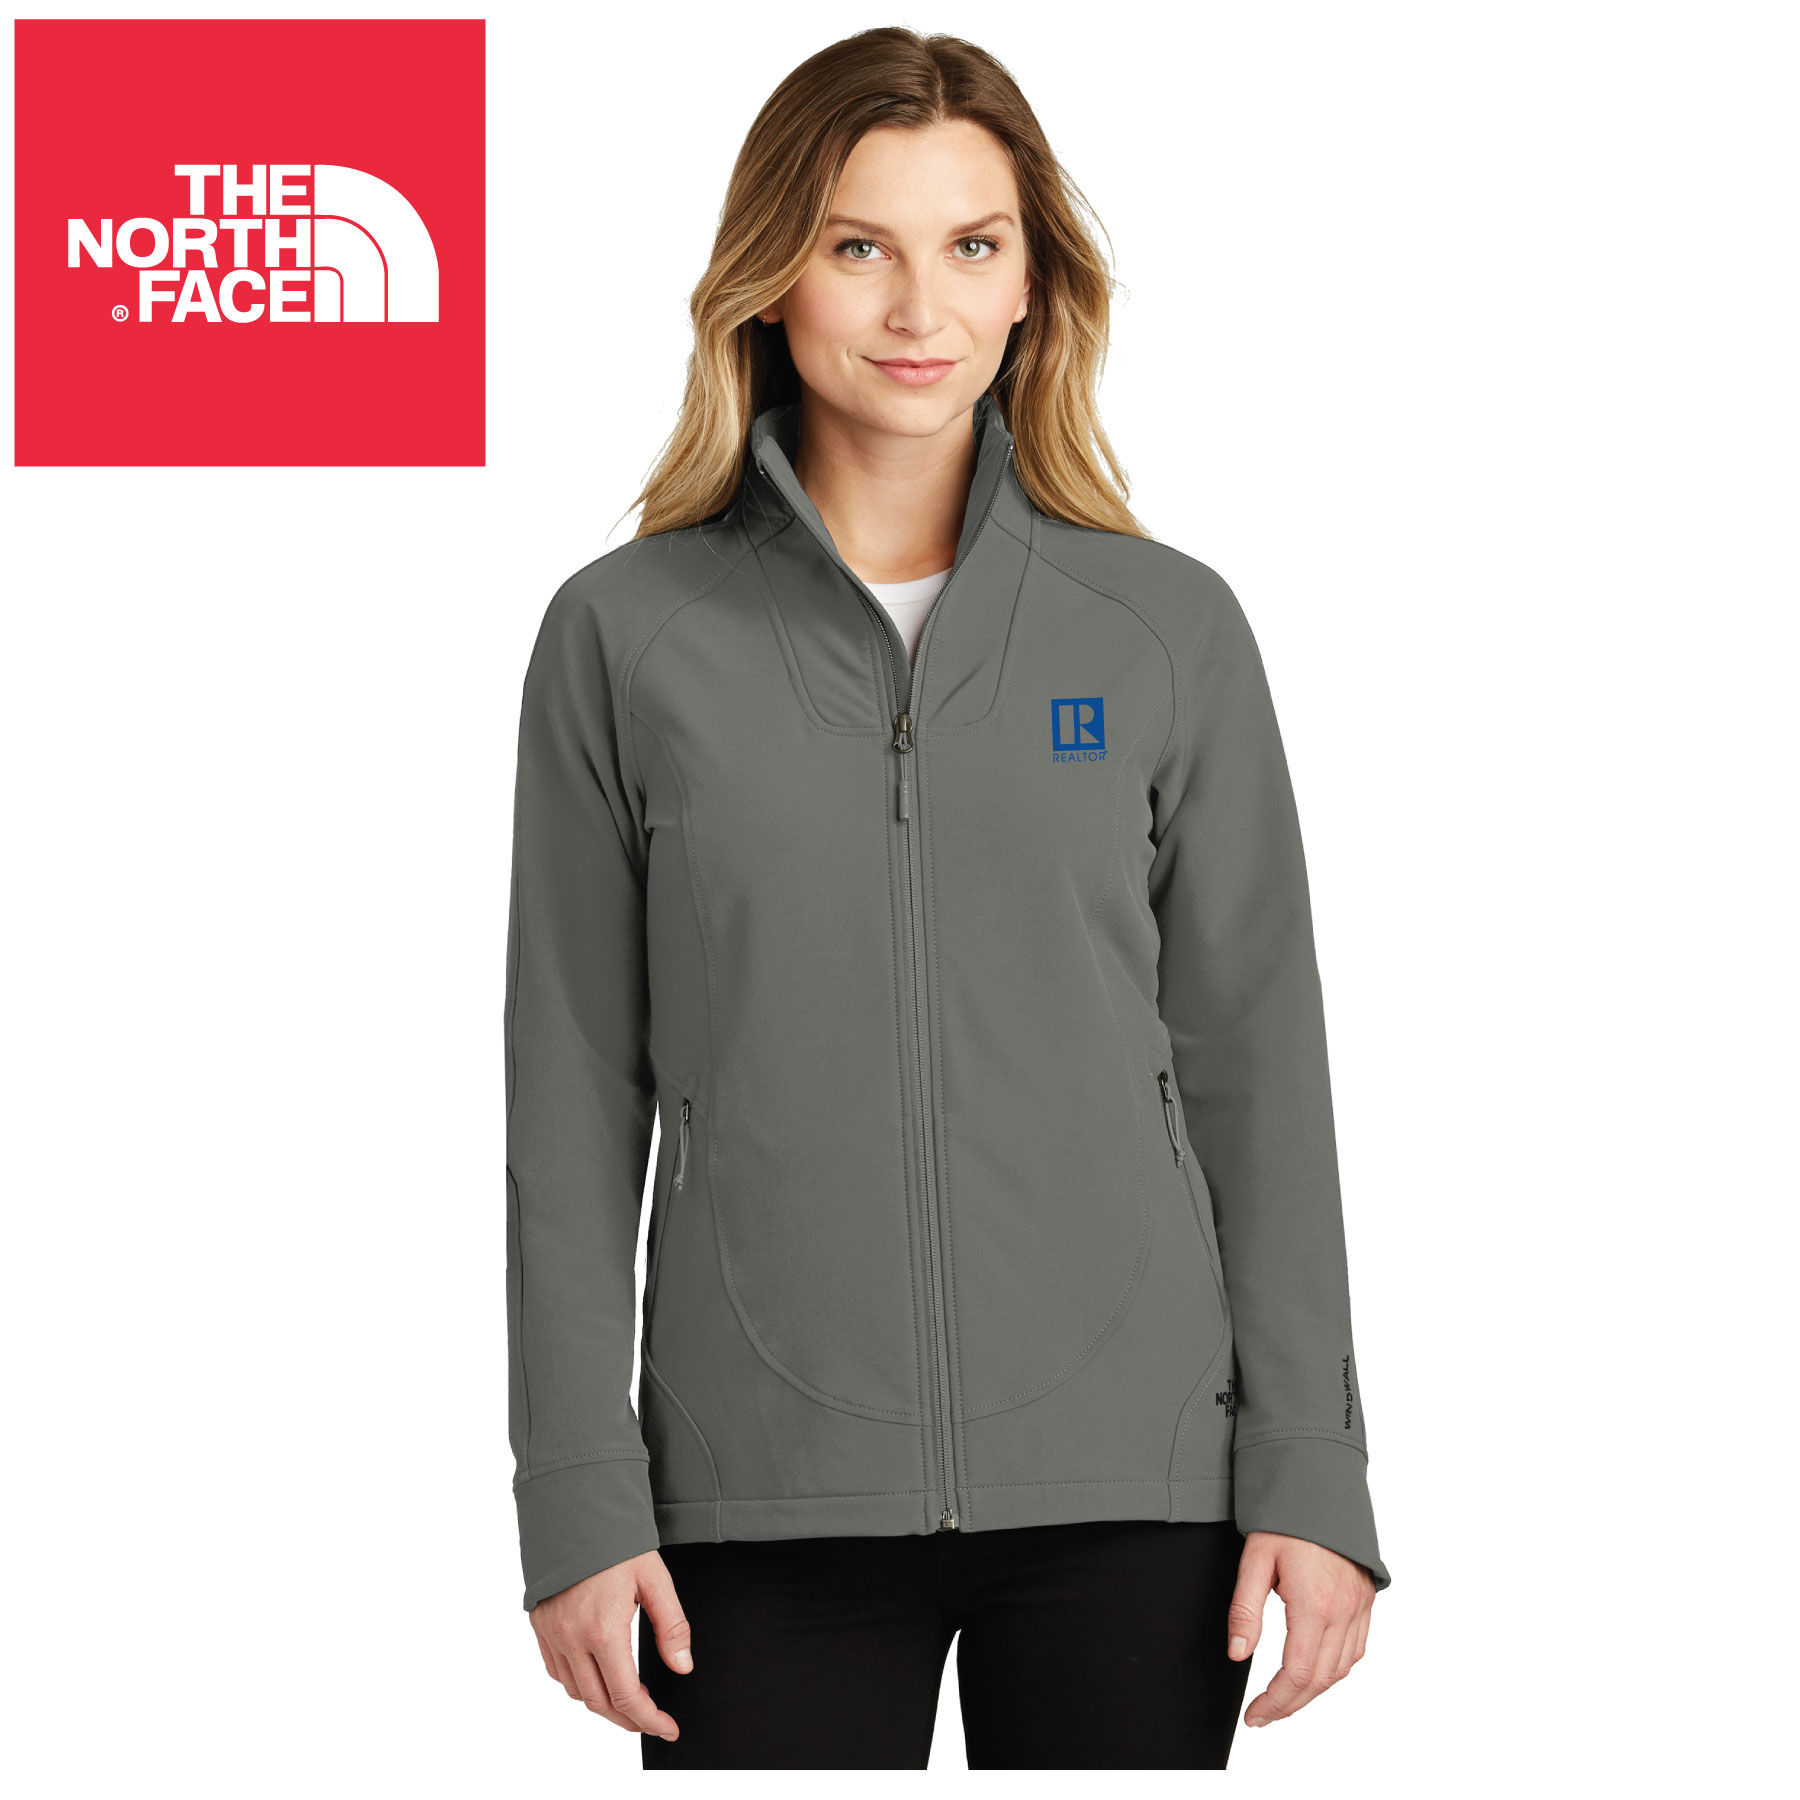 The North Face® Ladies Tech Stretch Soft Shell Jacket TheNorthFace,Norths,Jacekts,Zips